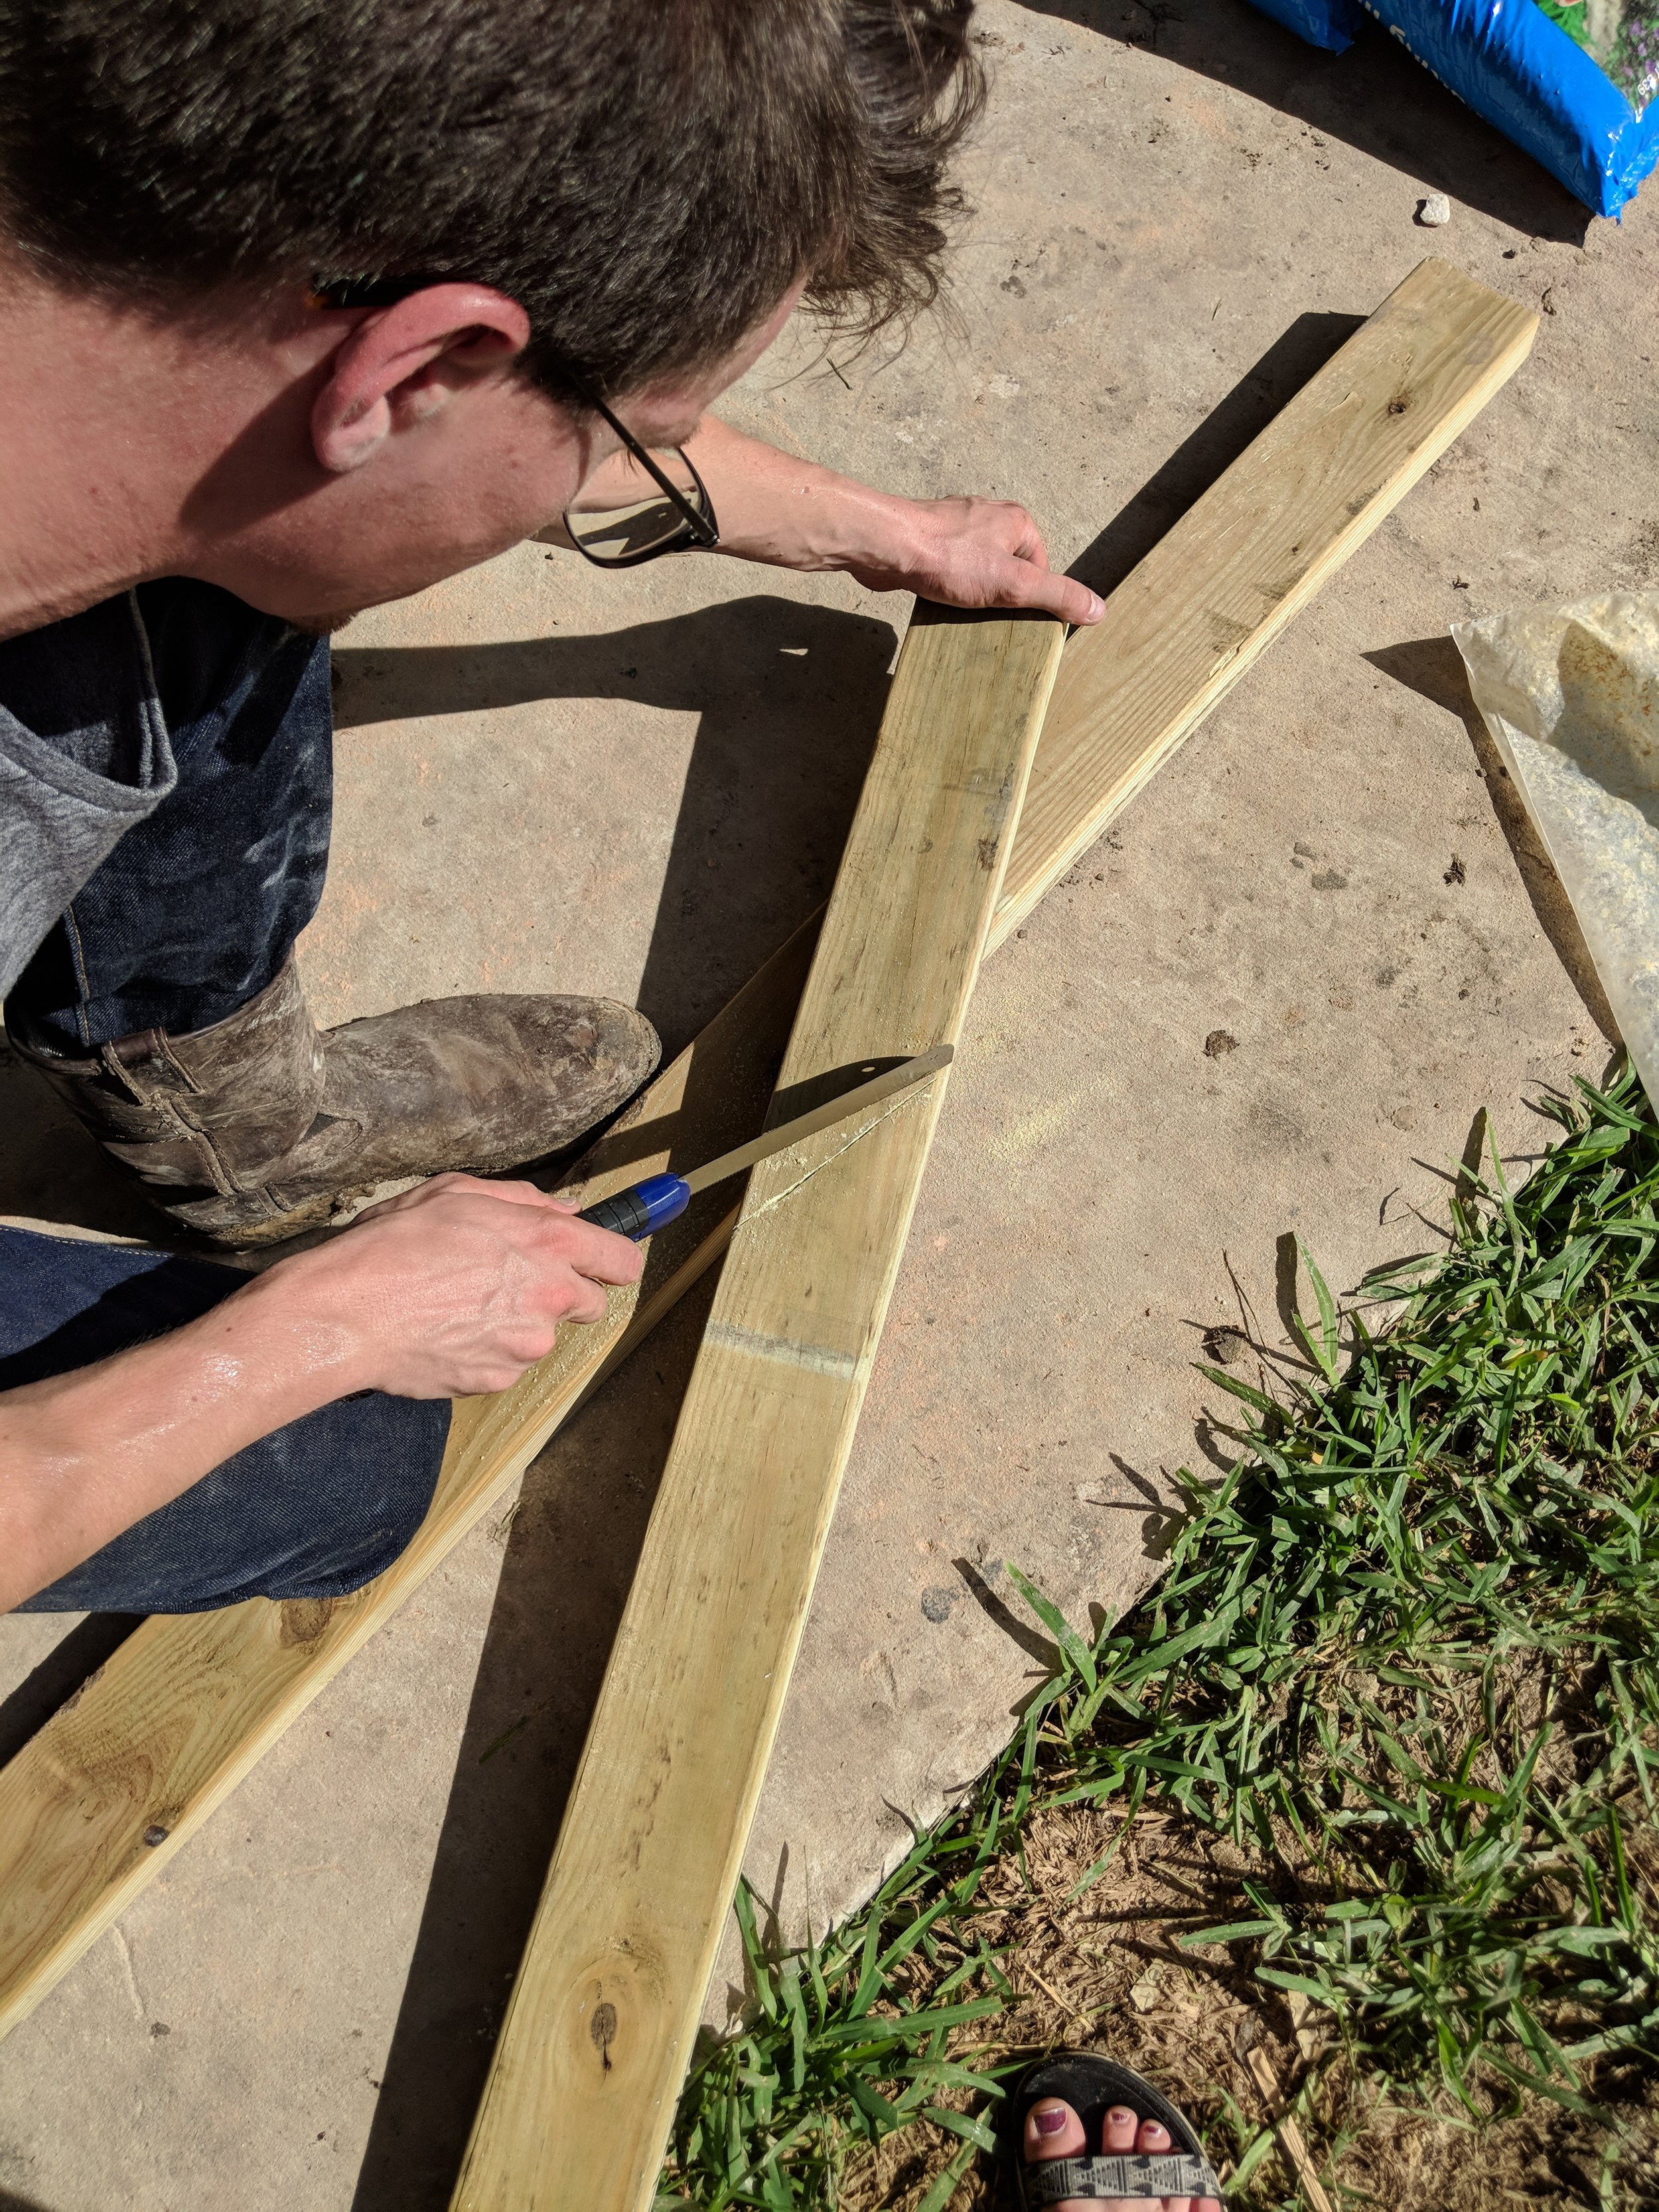 Michael made stakes by sawing a sharp angled piece off of the 2x4.